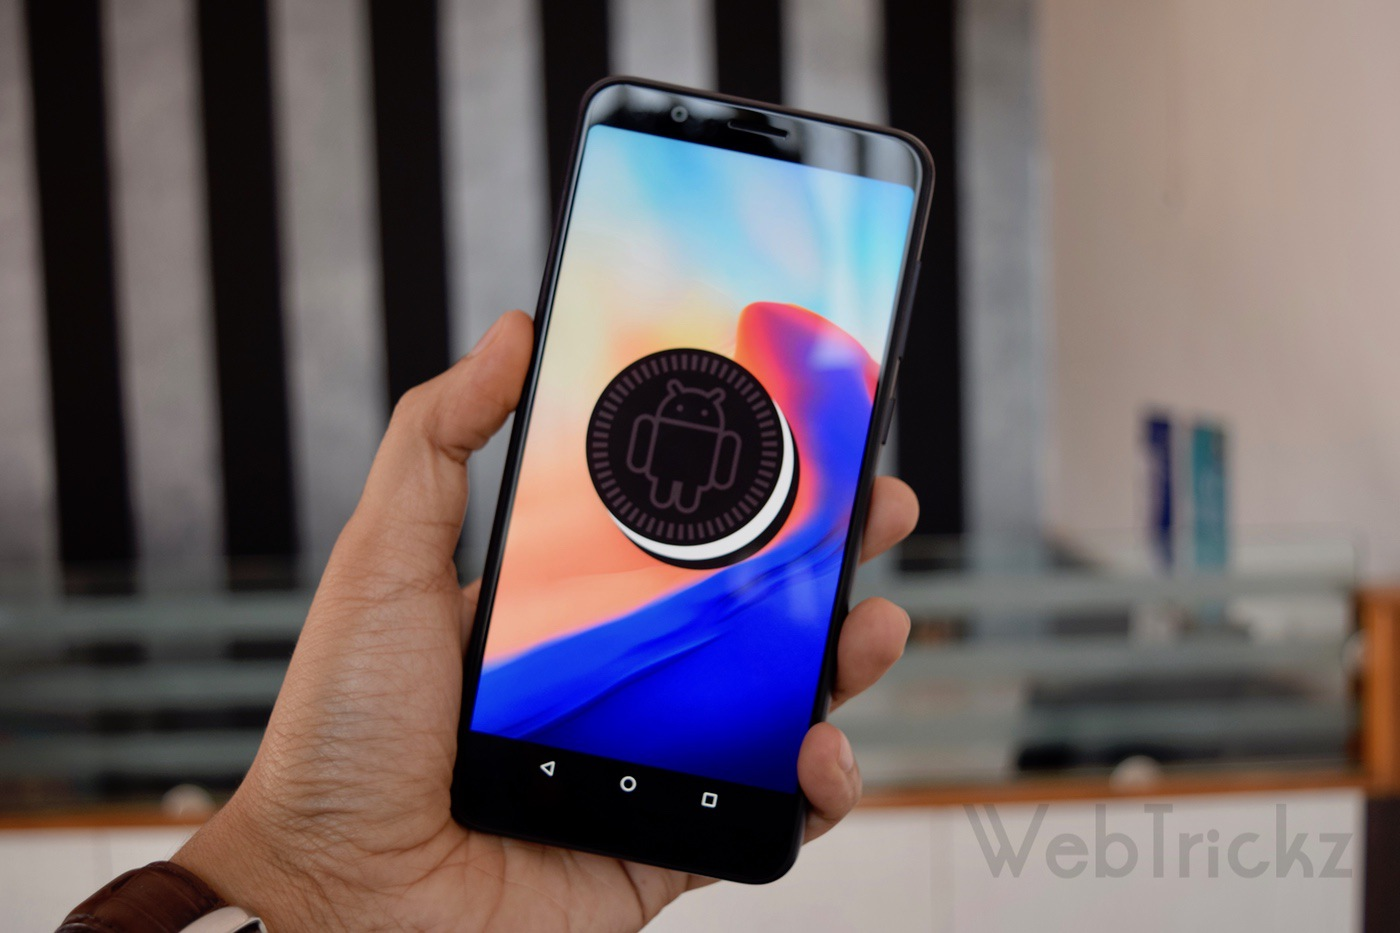 Asus Zenfone Max Pro running stock android 8.1 oreo